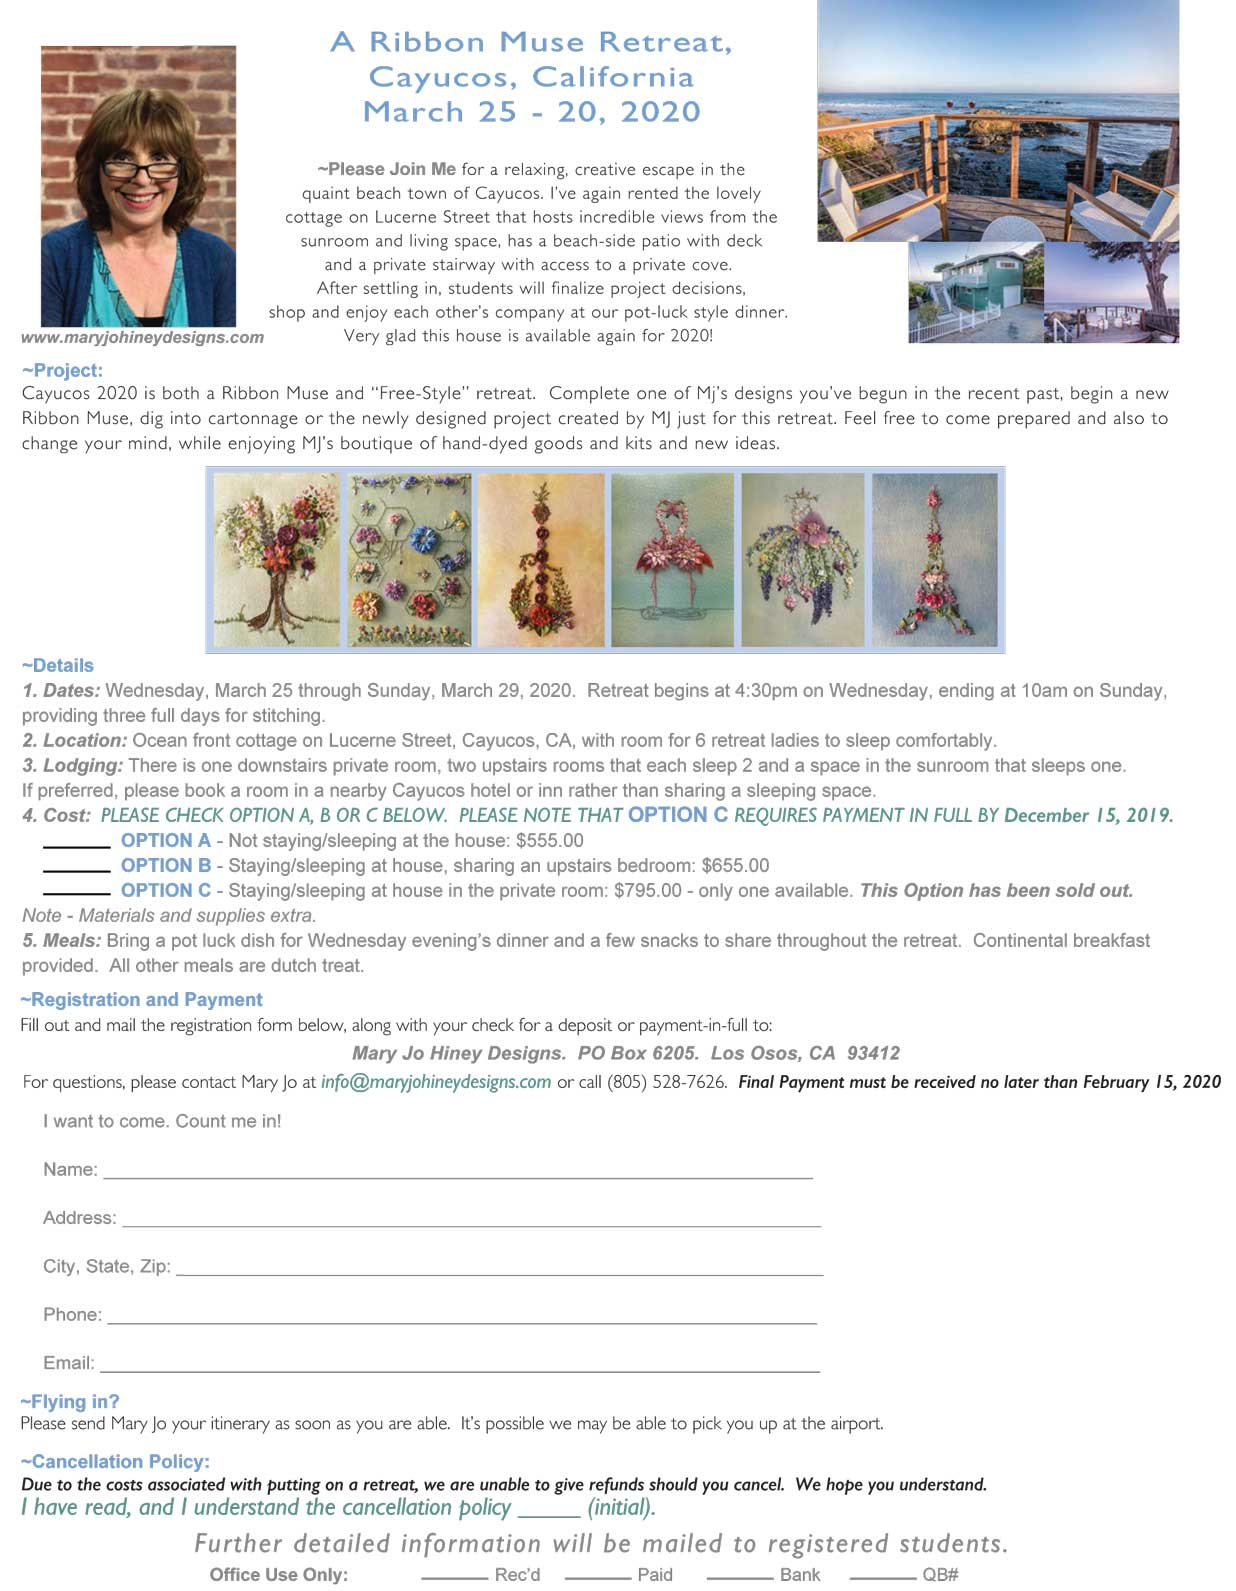 Mary Jo Hiney Designs Retreat Registraton for Cayucos 2020